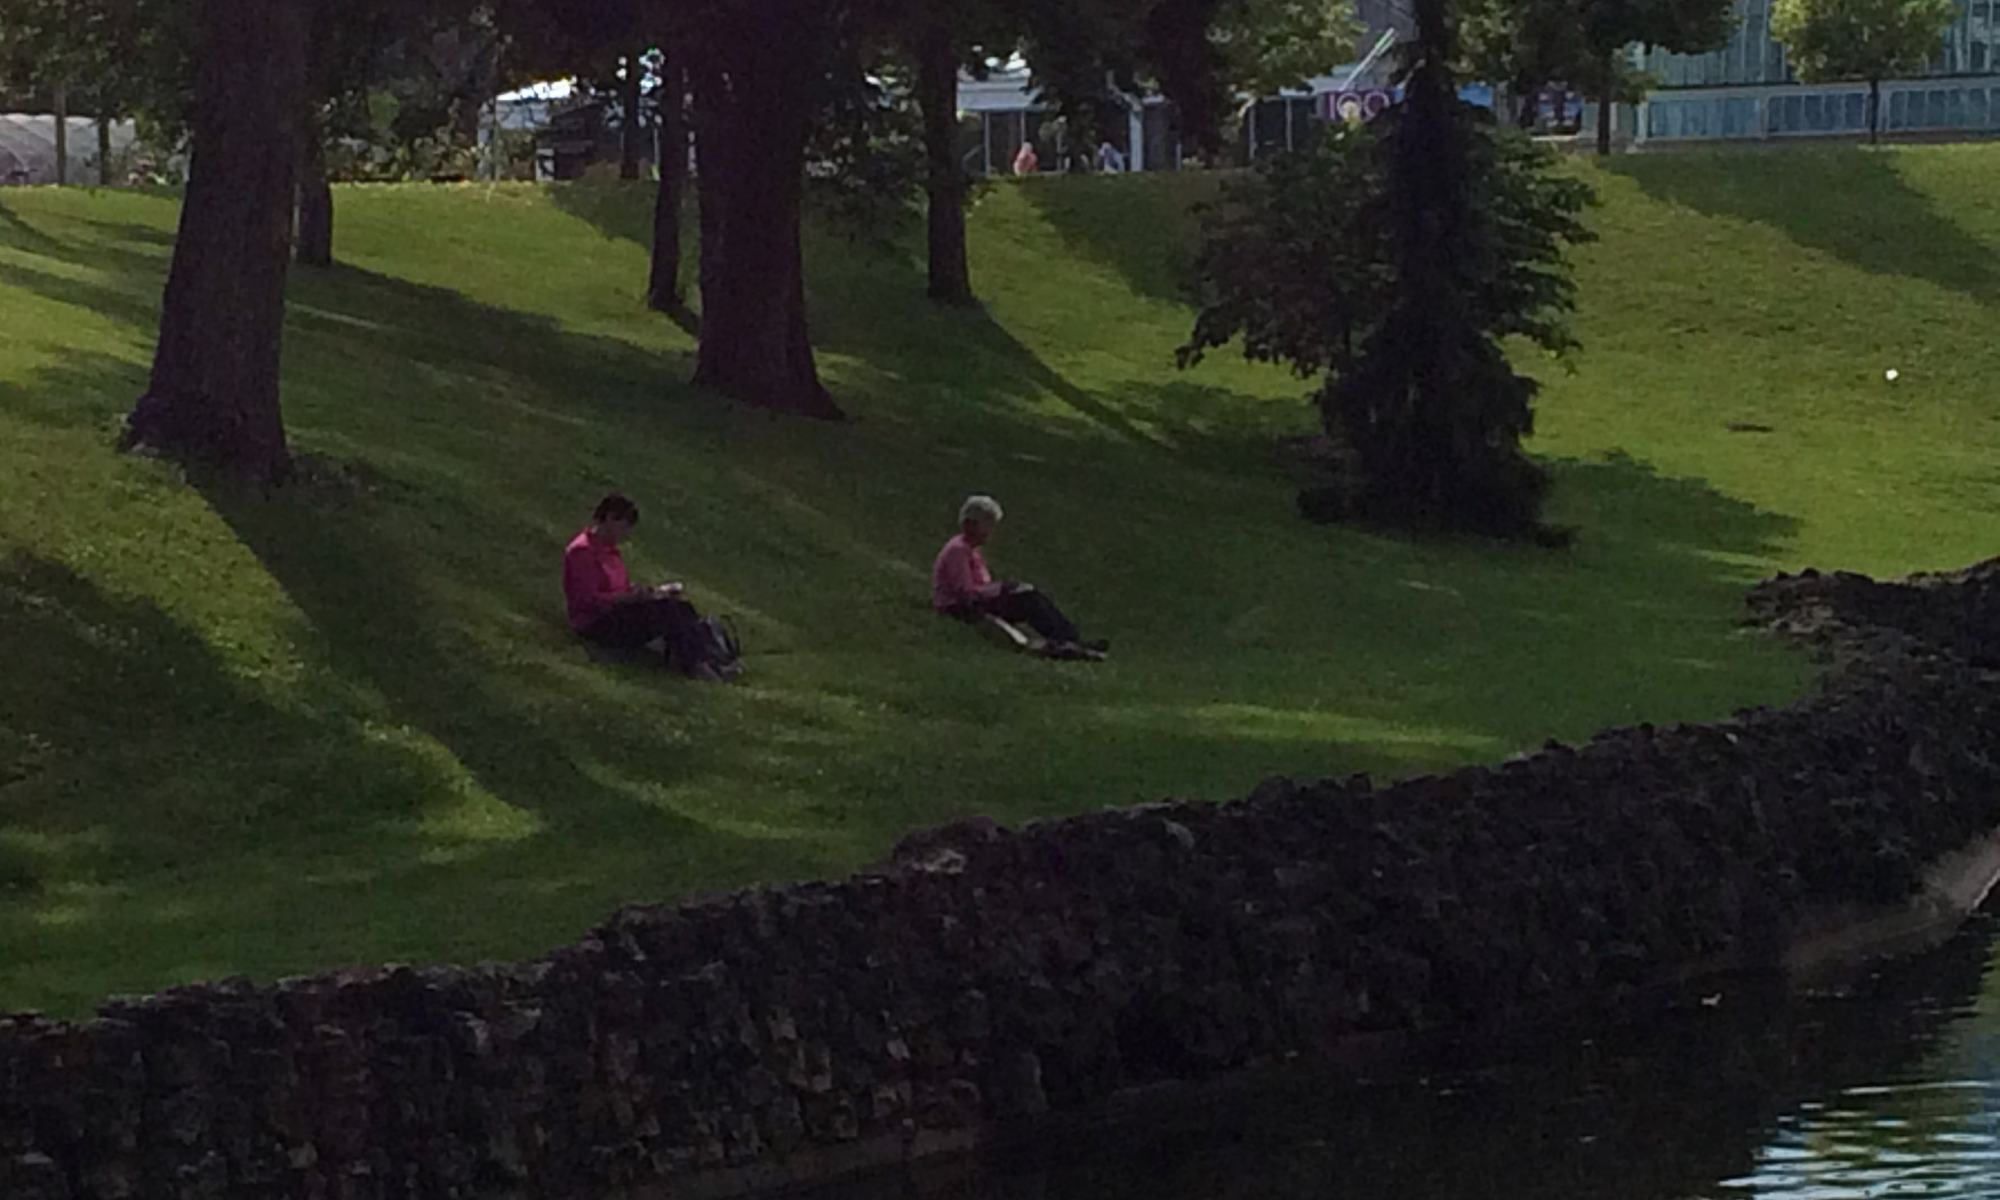 Sketchers by the pond at Como Conservatory.